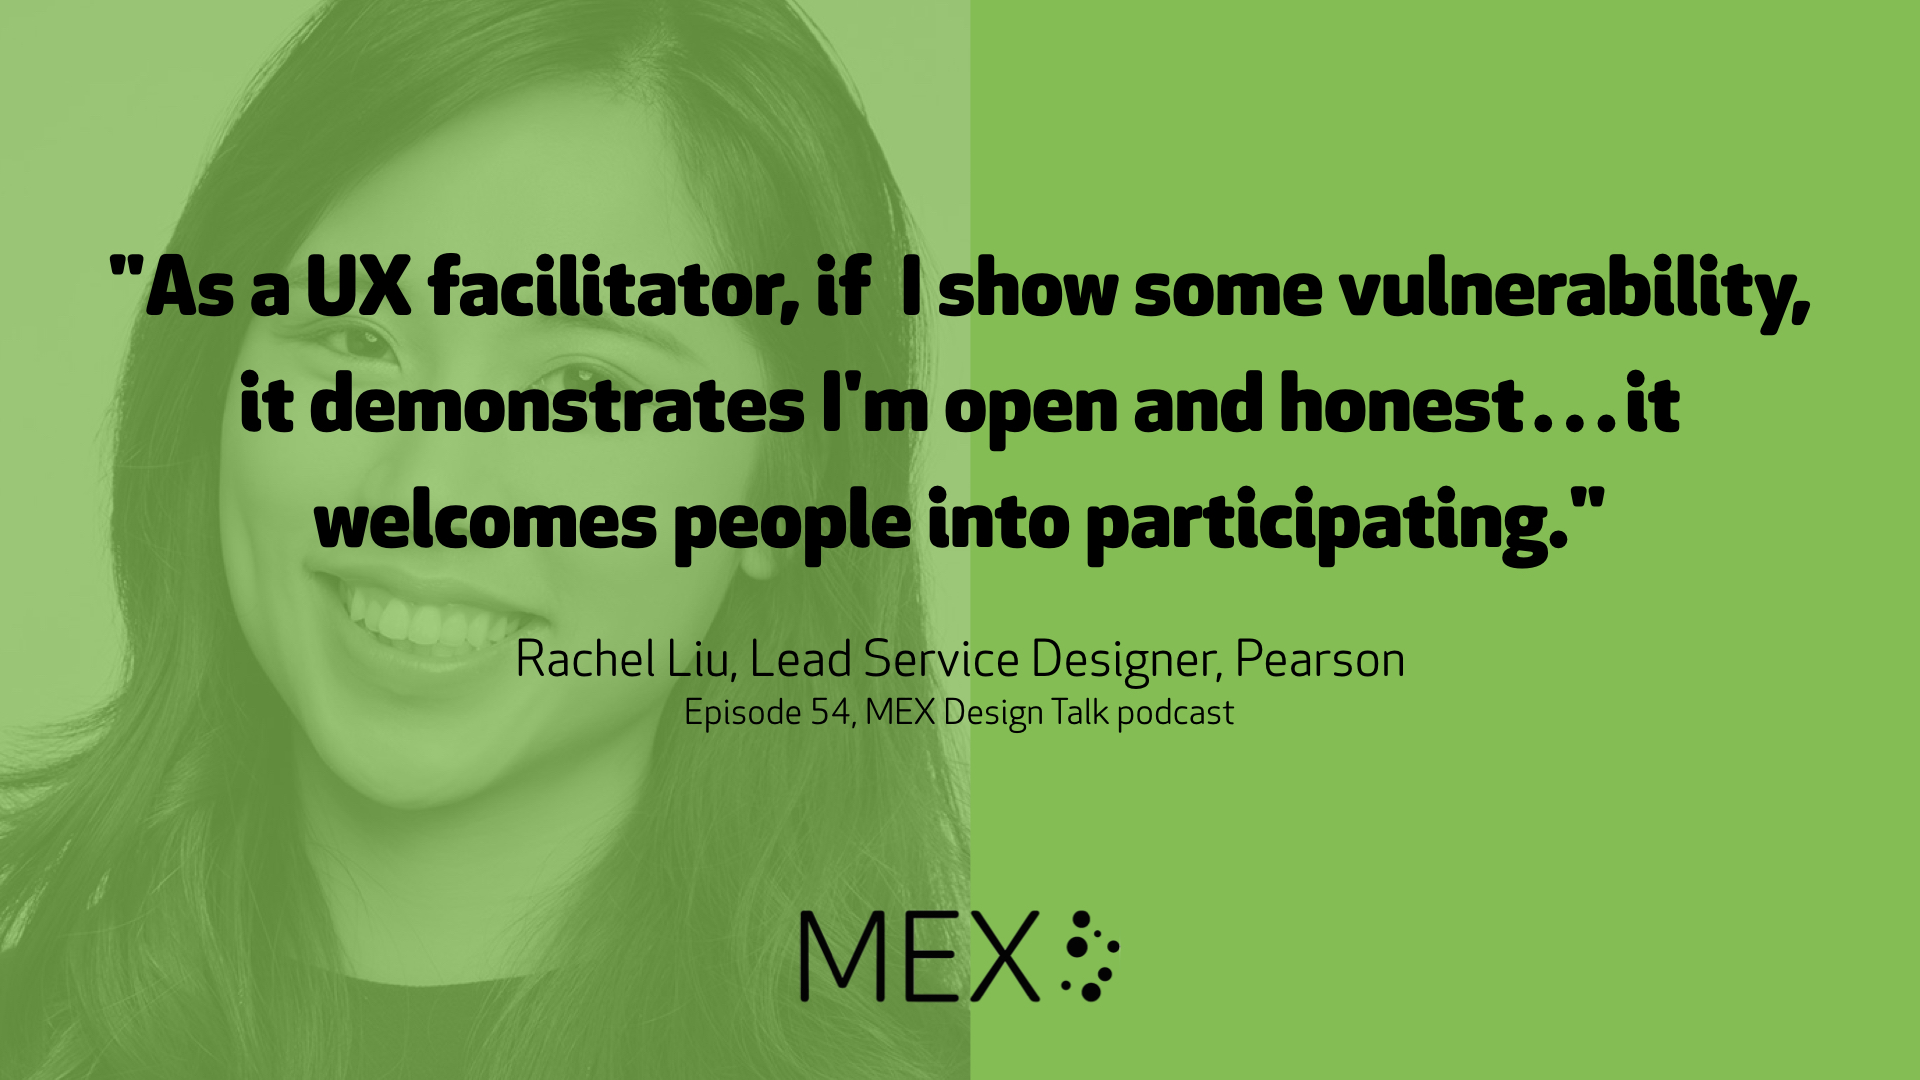 """As a UX facilitator, if I show some vulnerability, it demonstrates I'm open and honest…it welcomes people into participating."" Rachel Liu, Lead Service Designer, Pearson Episode 54, MEX Design Talk podcast"